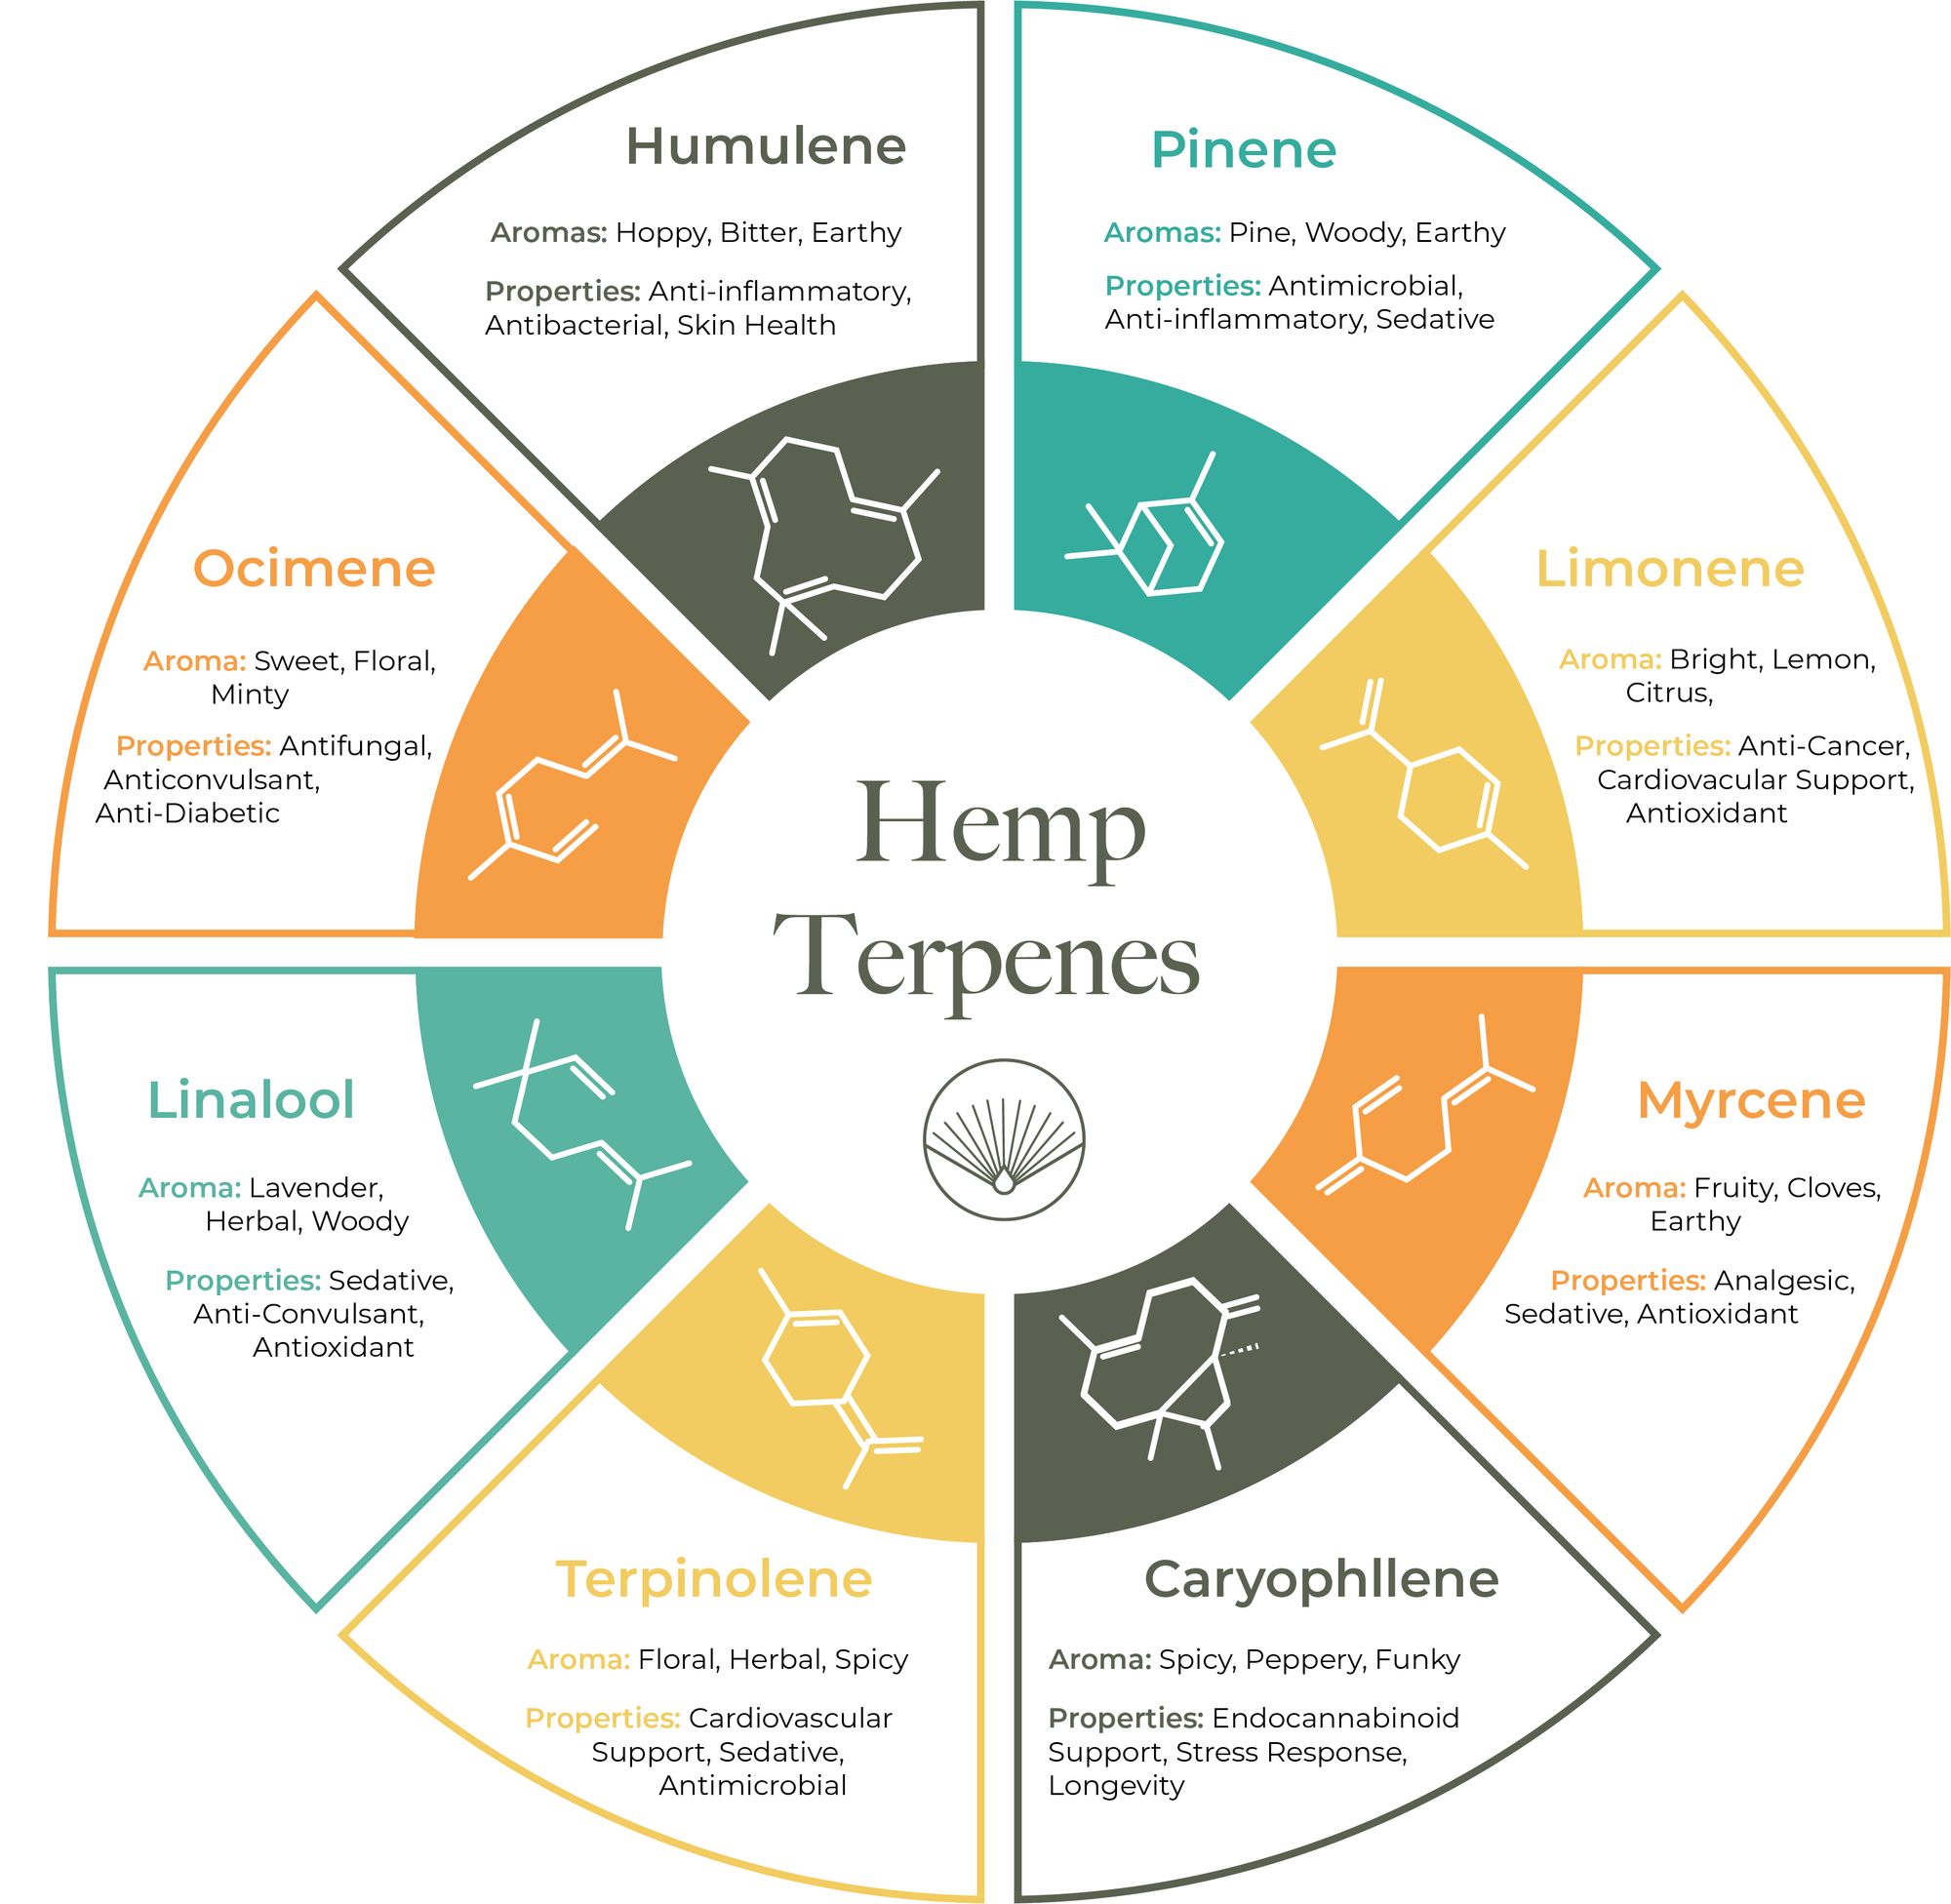 Therapeutic and Medicinal Uses of Terpenes